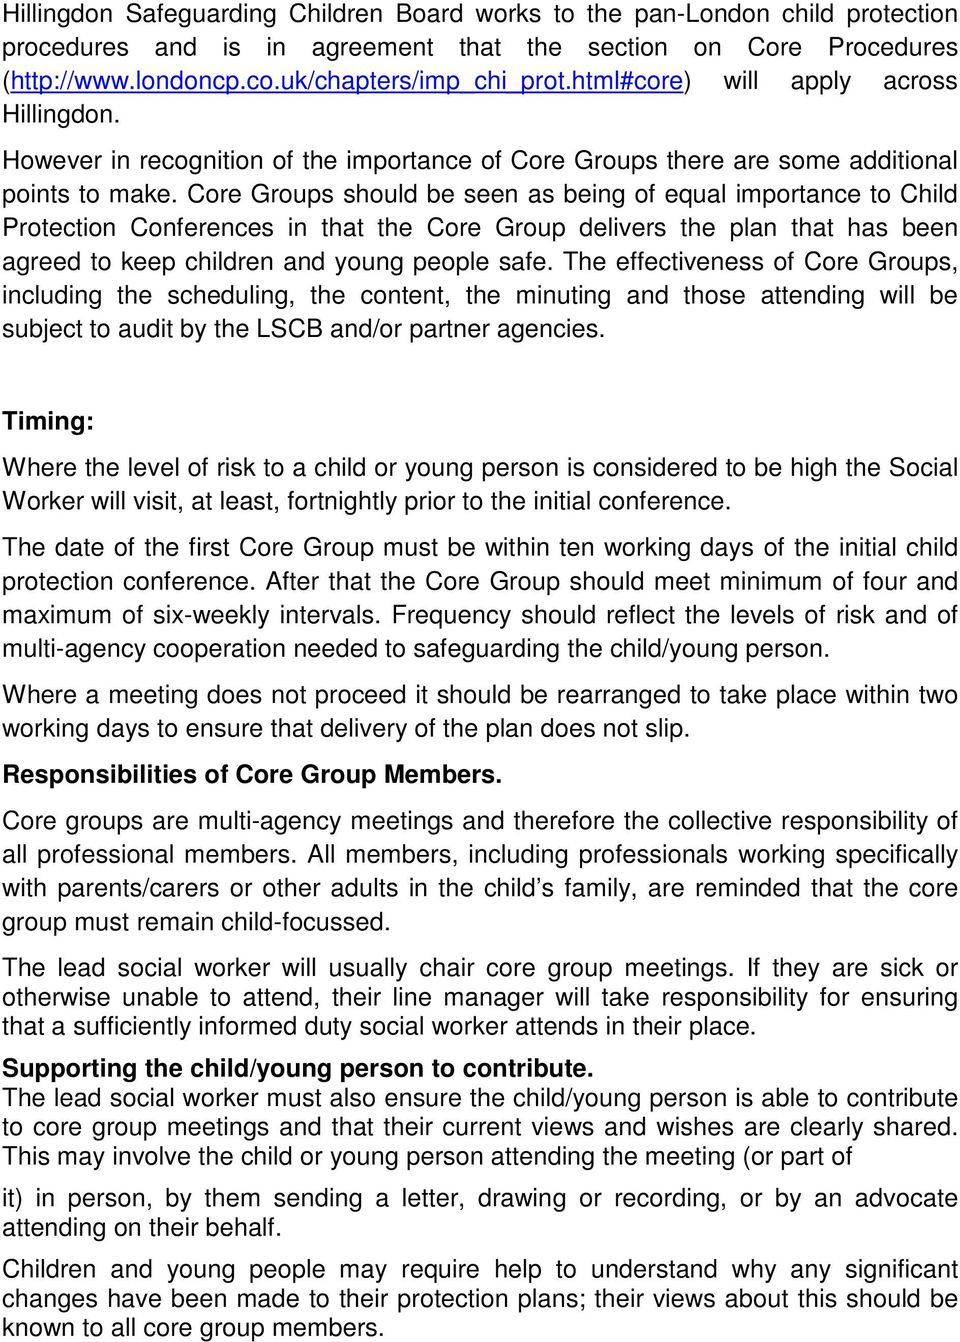 Core Groups should be seen as being of equal importance to Child Protection Conferences in that the Core Group delivers the plan that has been agreed to keep children and young people safe.